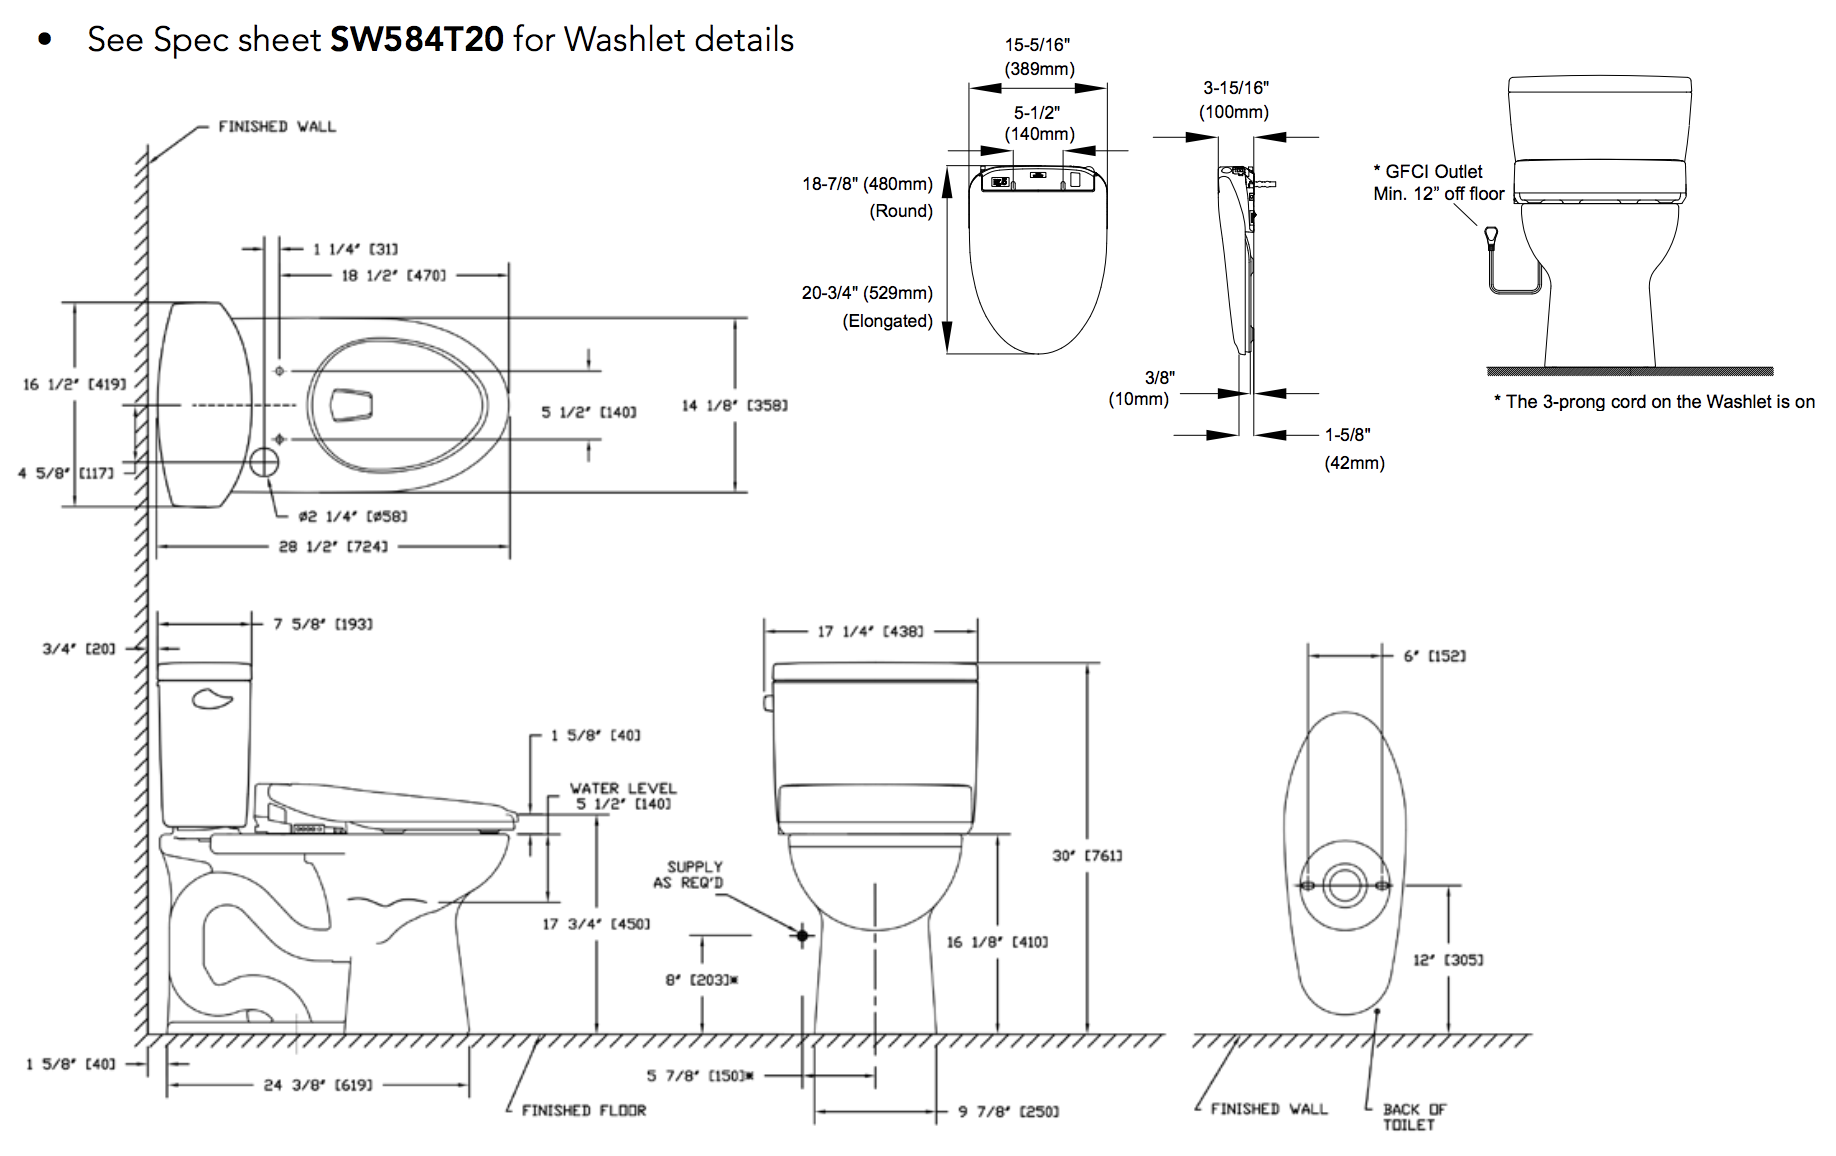 drake-ii-washlet-s350e-two-piece-toilet-1.28-gpf-diagram.png